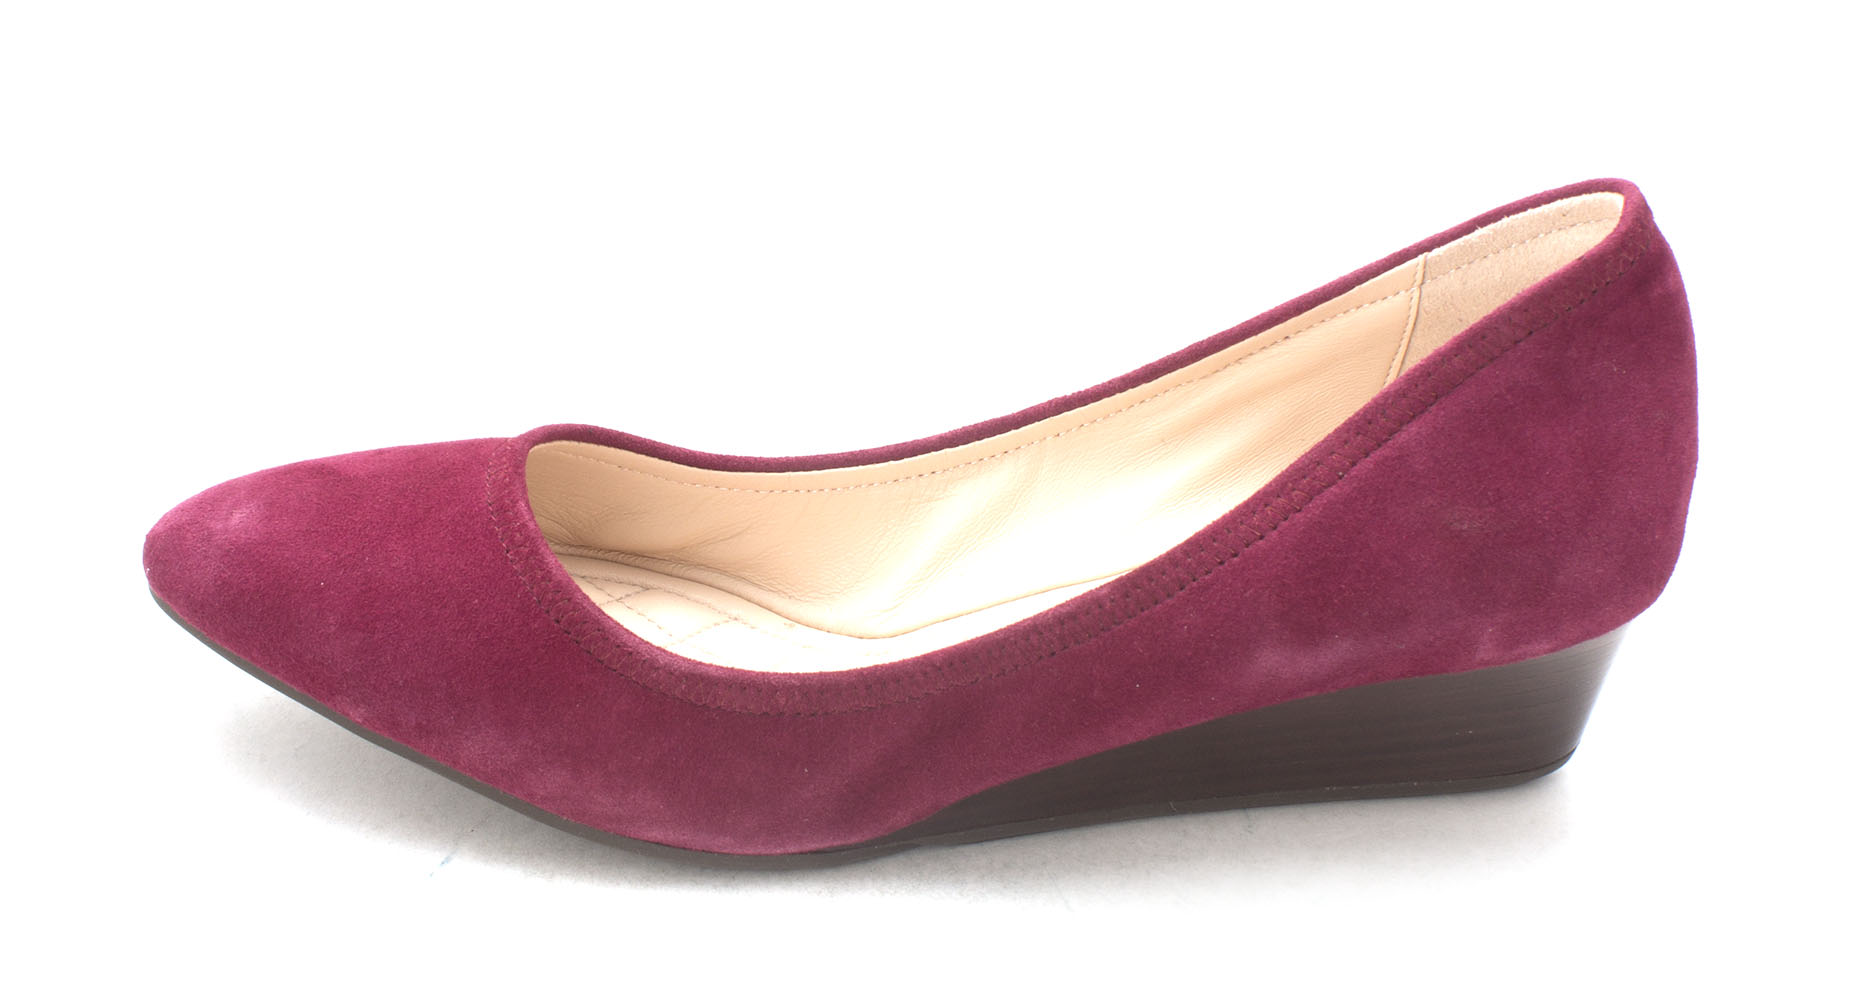 Cole Haan Womens Rosemariesam Closed Toe Wedge Pumps Purple Size 6.0